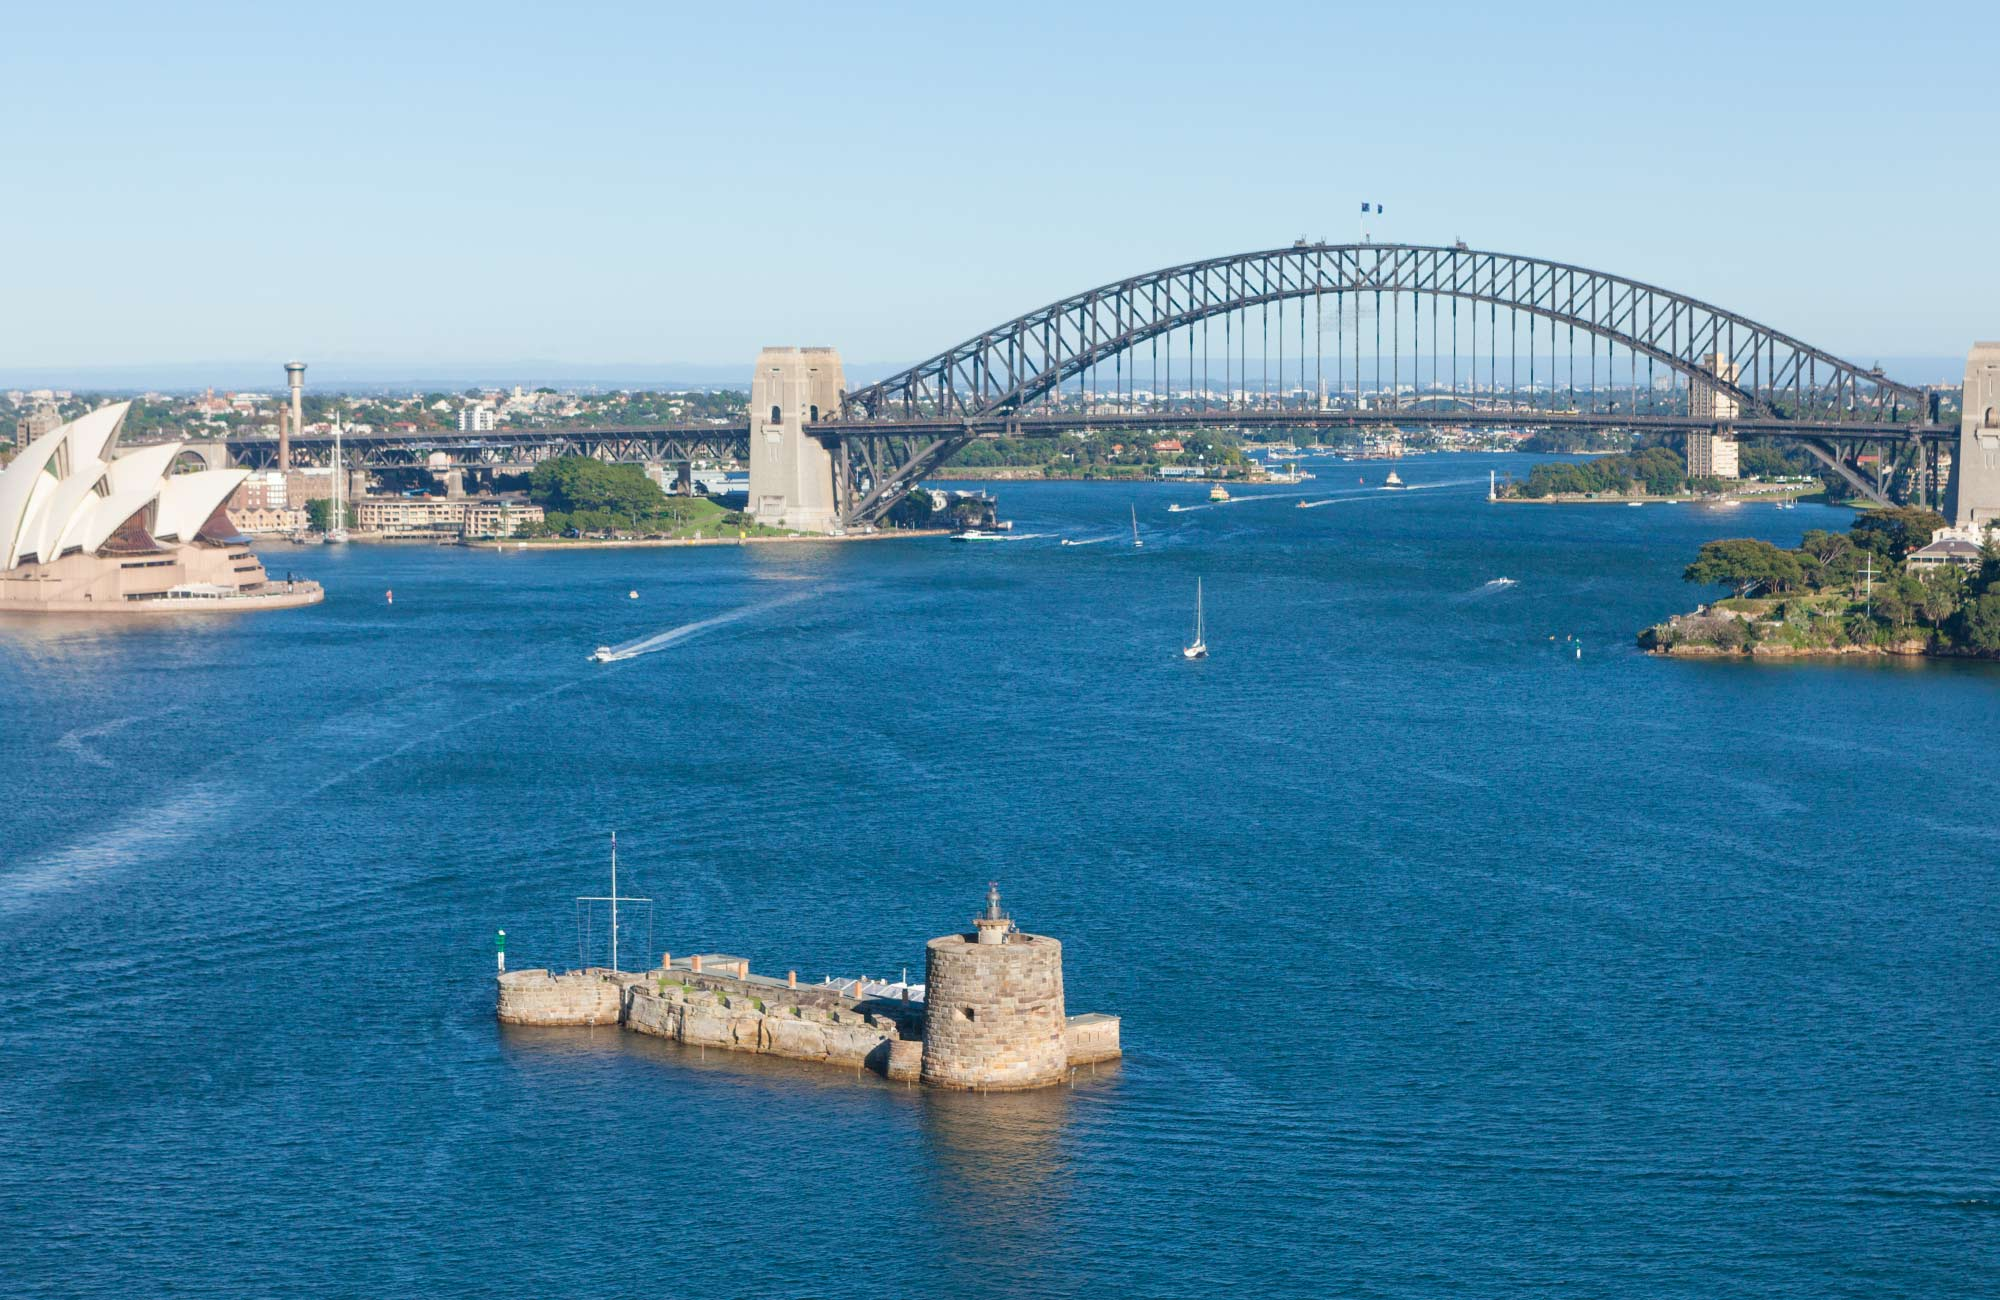 Sydney Harbor National Park in Sydney